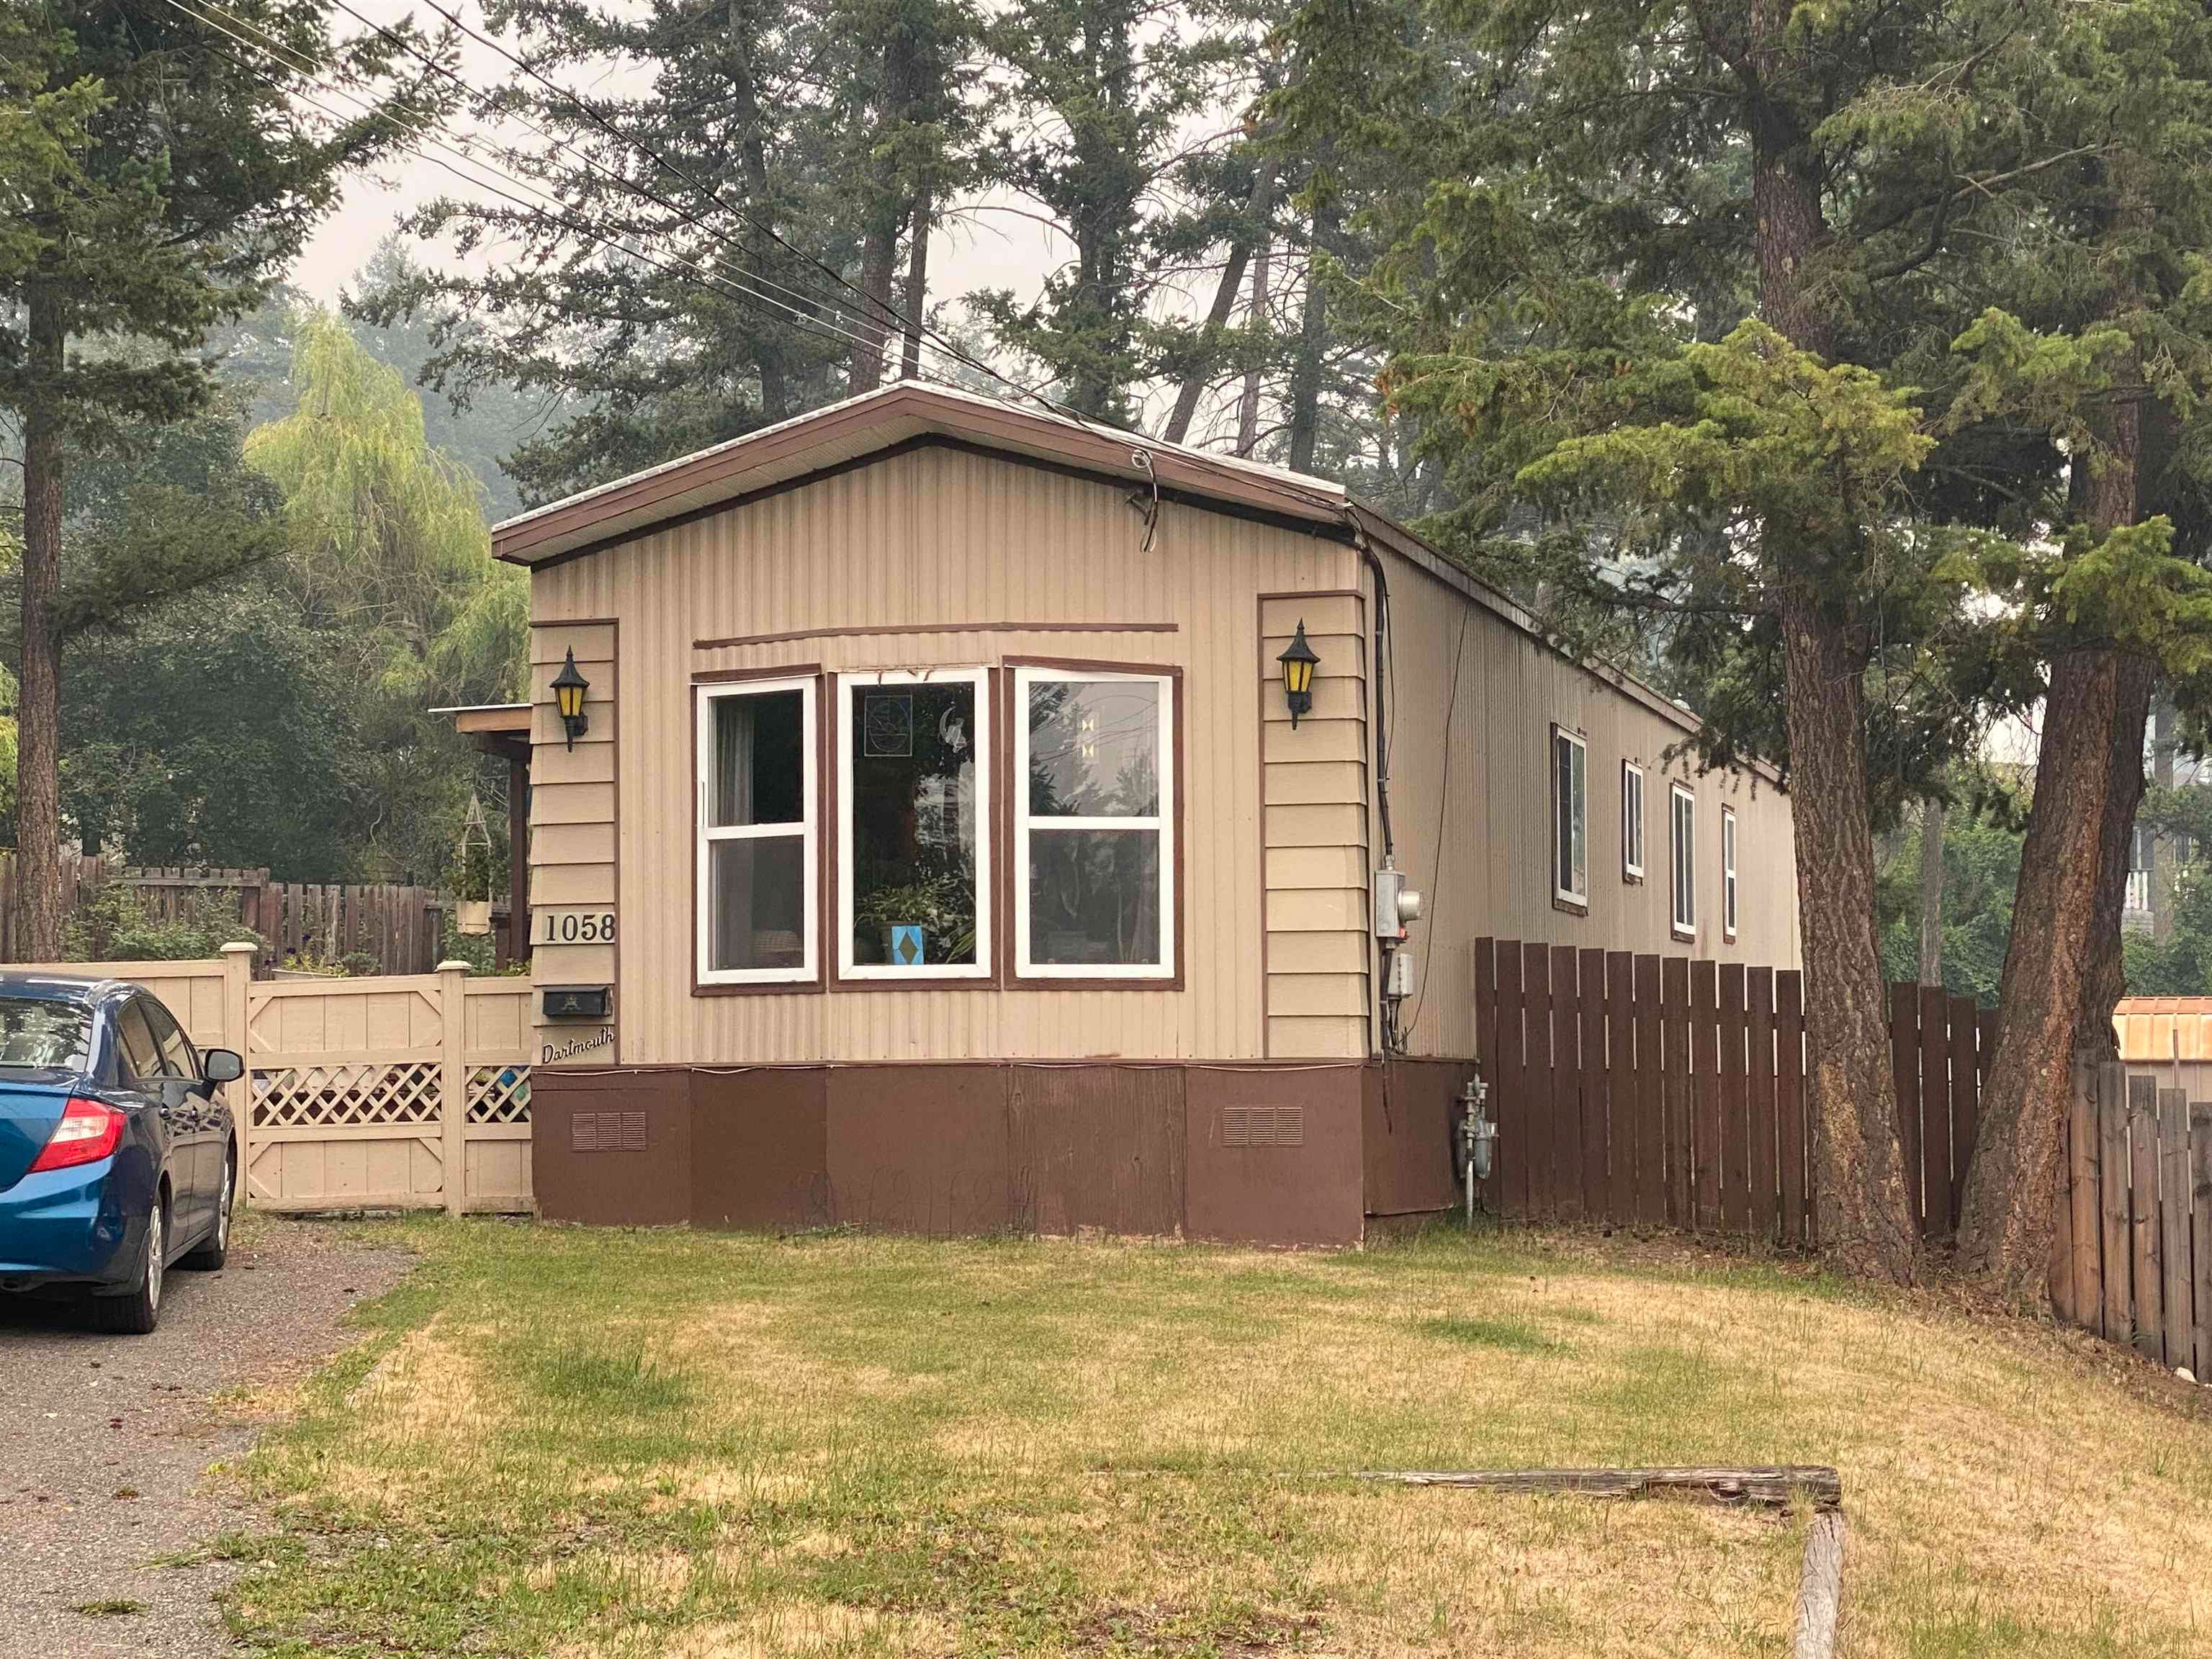 Main Photo: 1058 OAK Place in Williams Lake: Williams Lake - City Manufactured Home for sale (Williams Lake (Zone 27))  : MLS®# R2617009